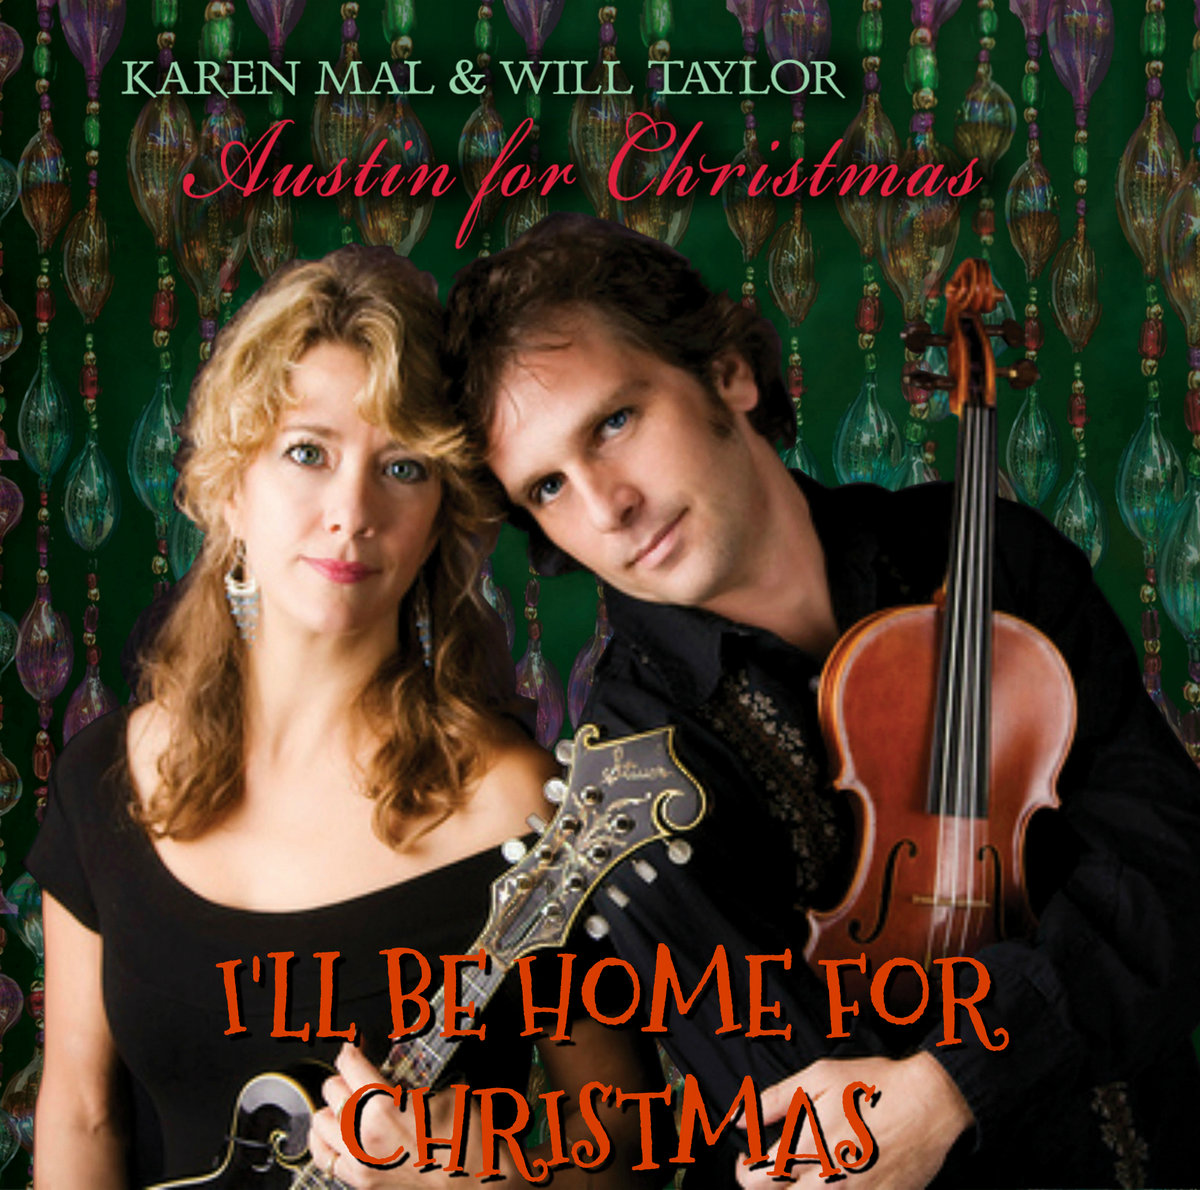 ill be home for christmas from austin for christmas by karen mal will taylor - I Will Be Home For Christmas